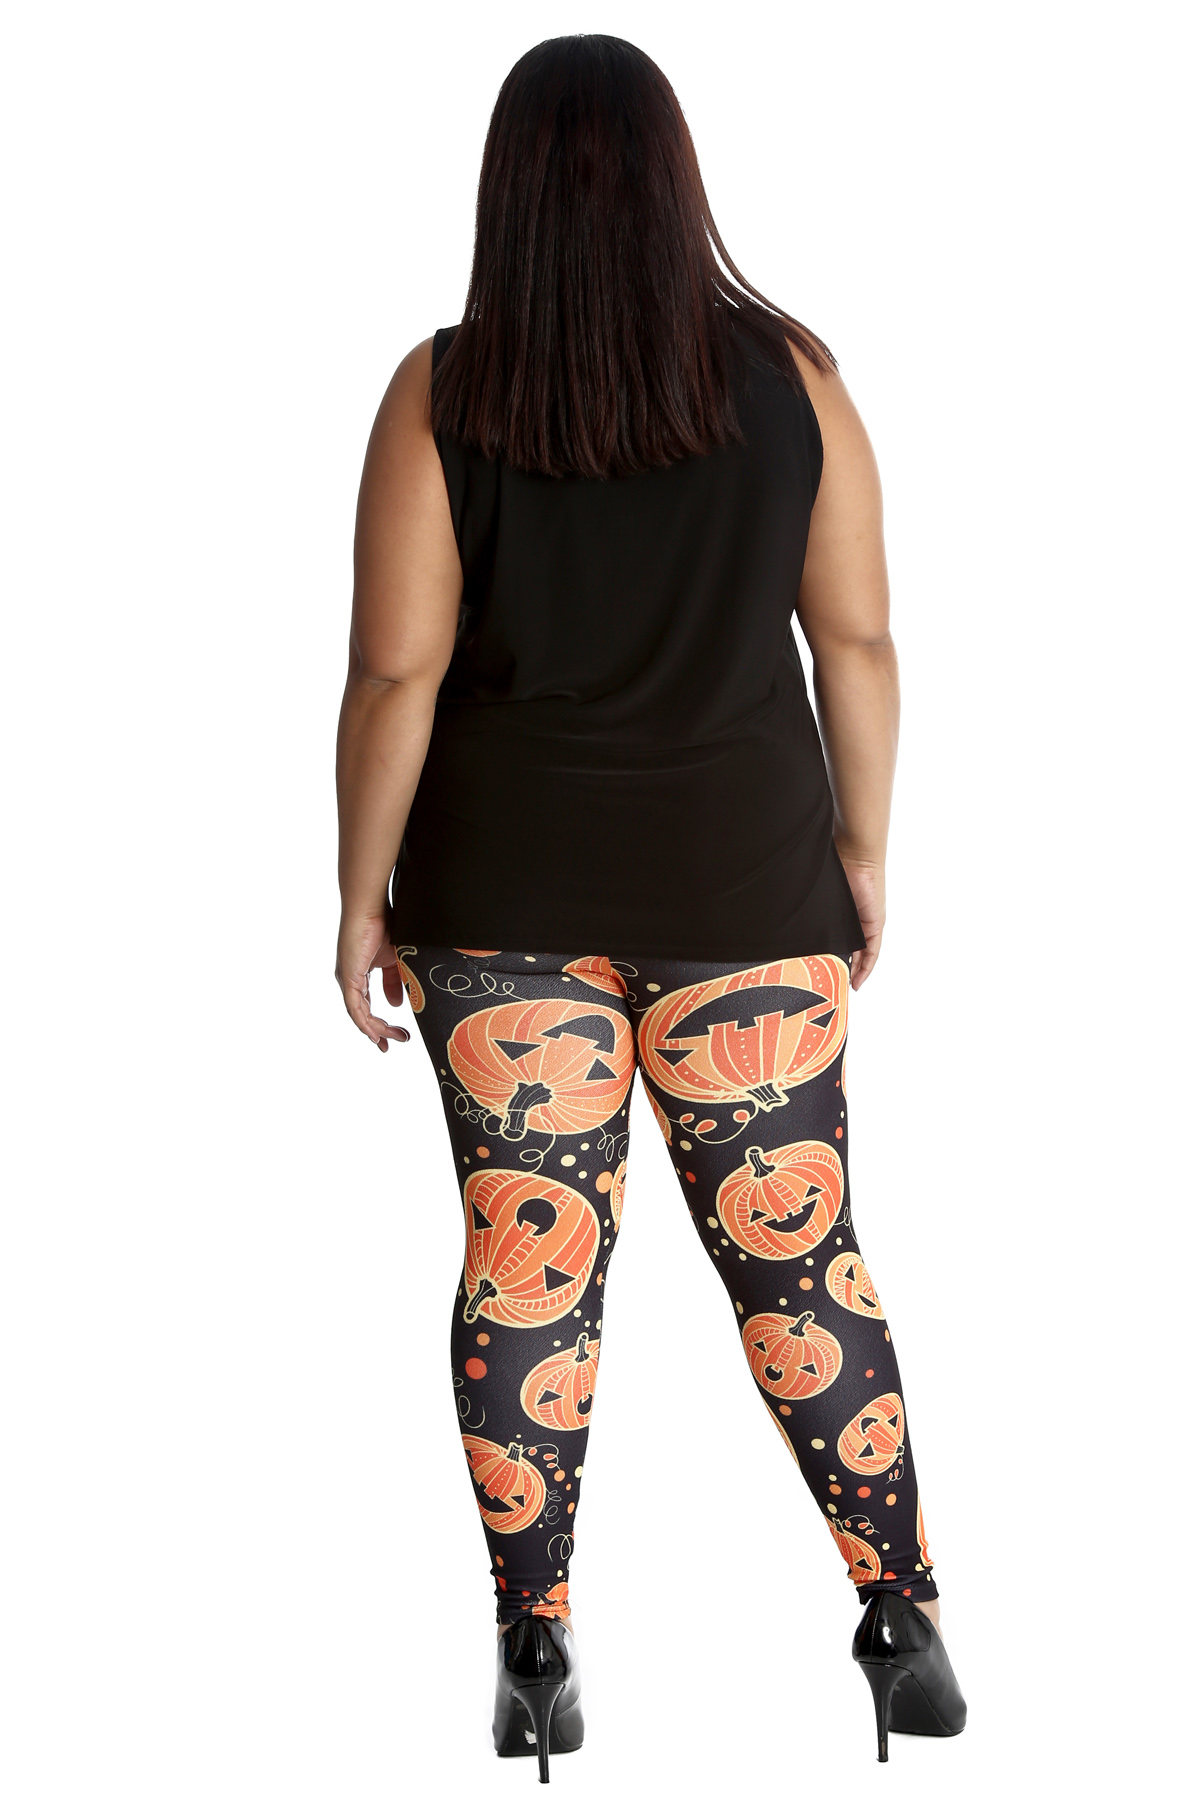 01bfb6518e1 New Ladies Leggings Plus Size Women Halloween Pant Pumpkin Print ...